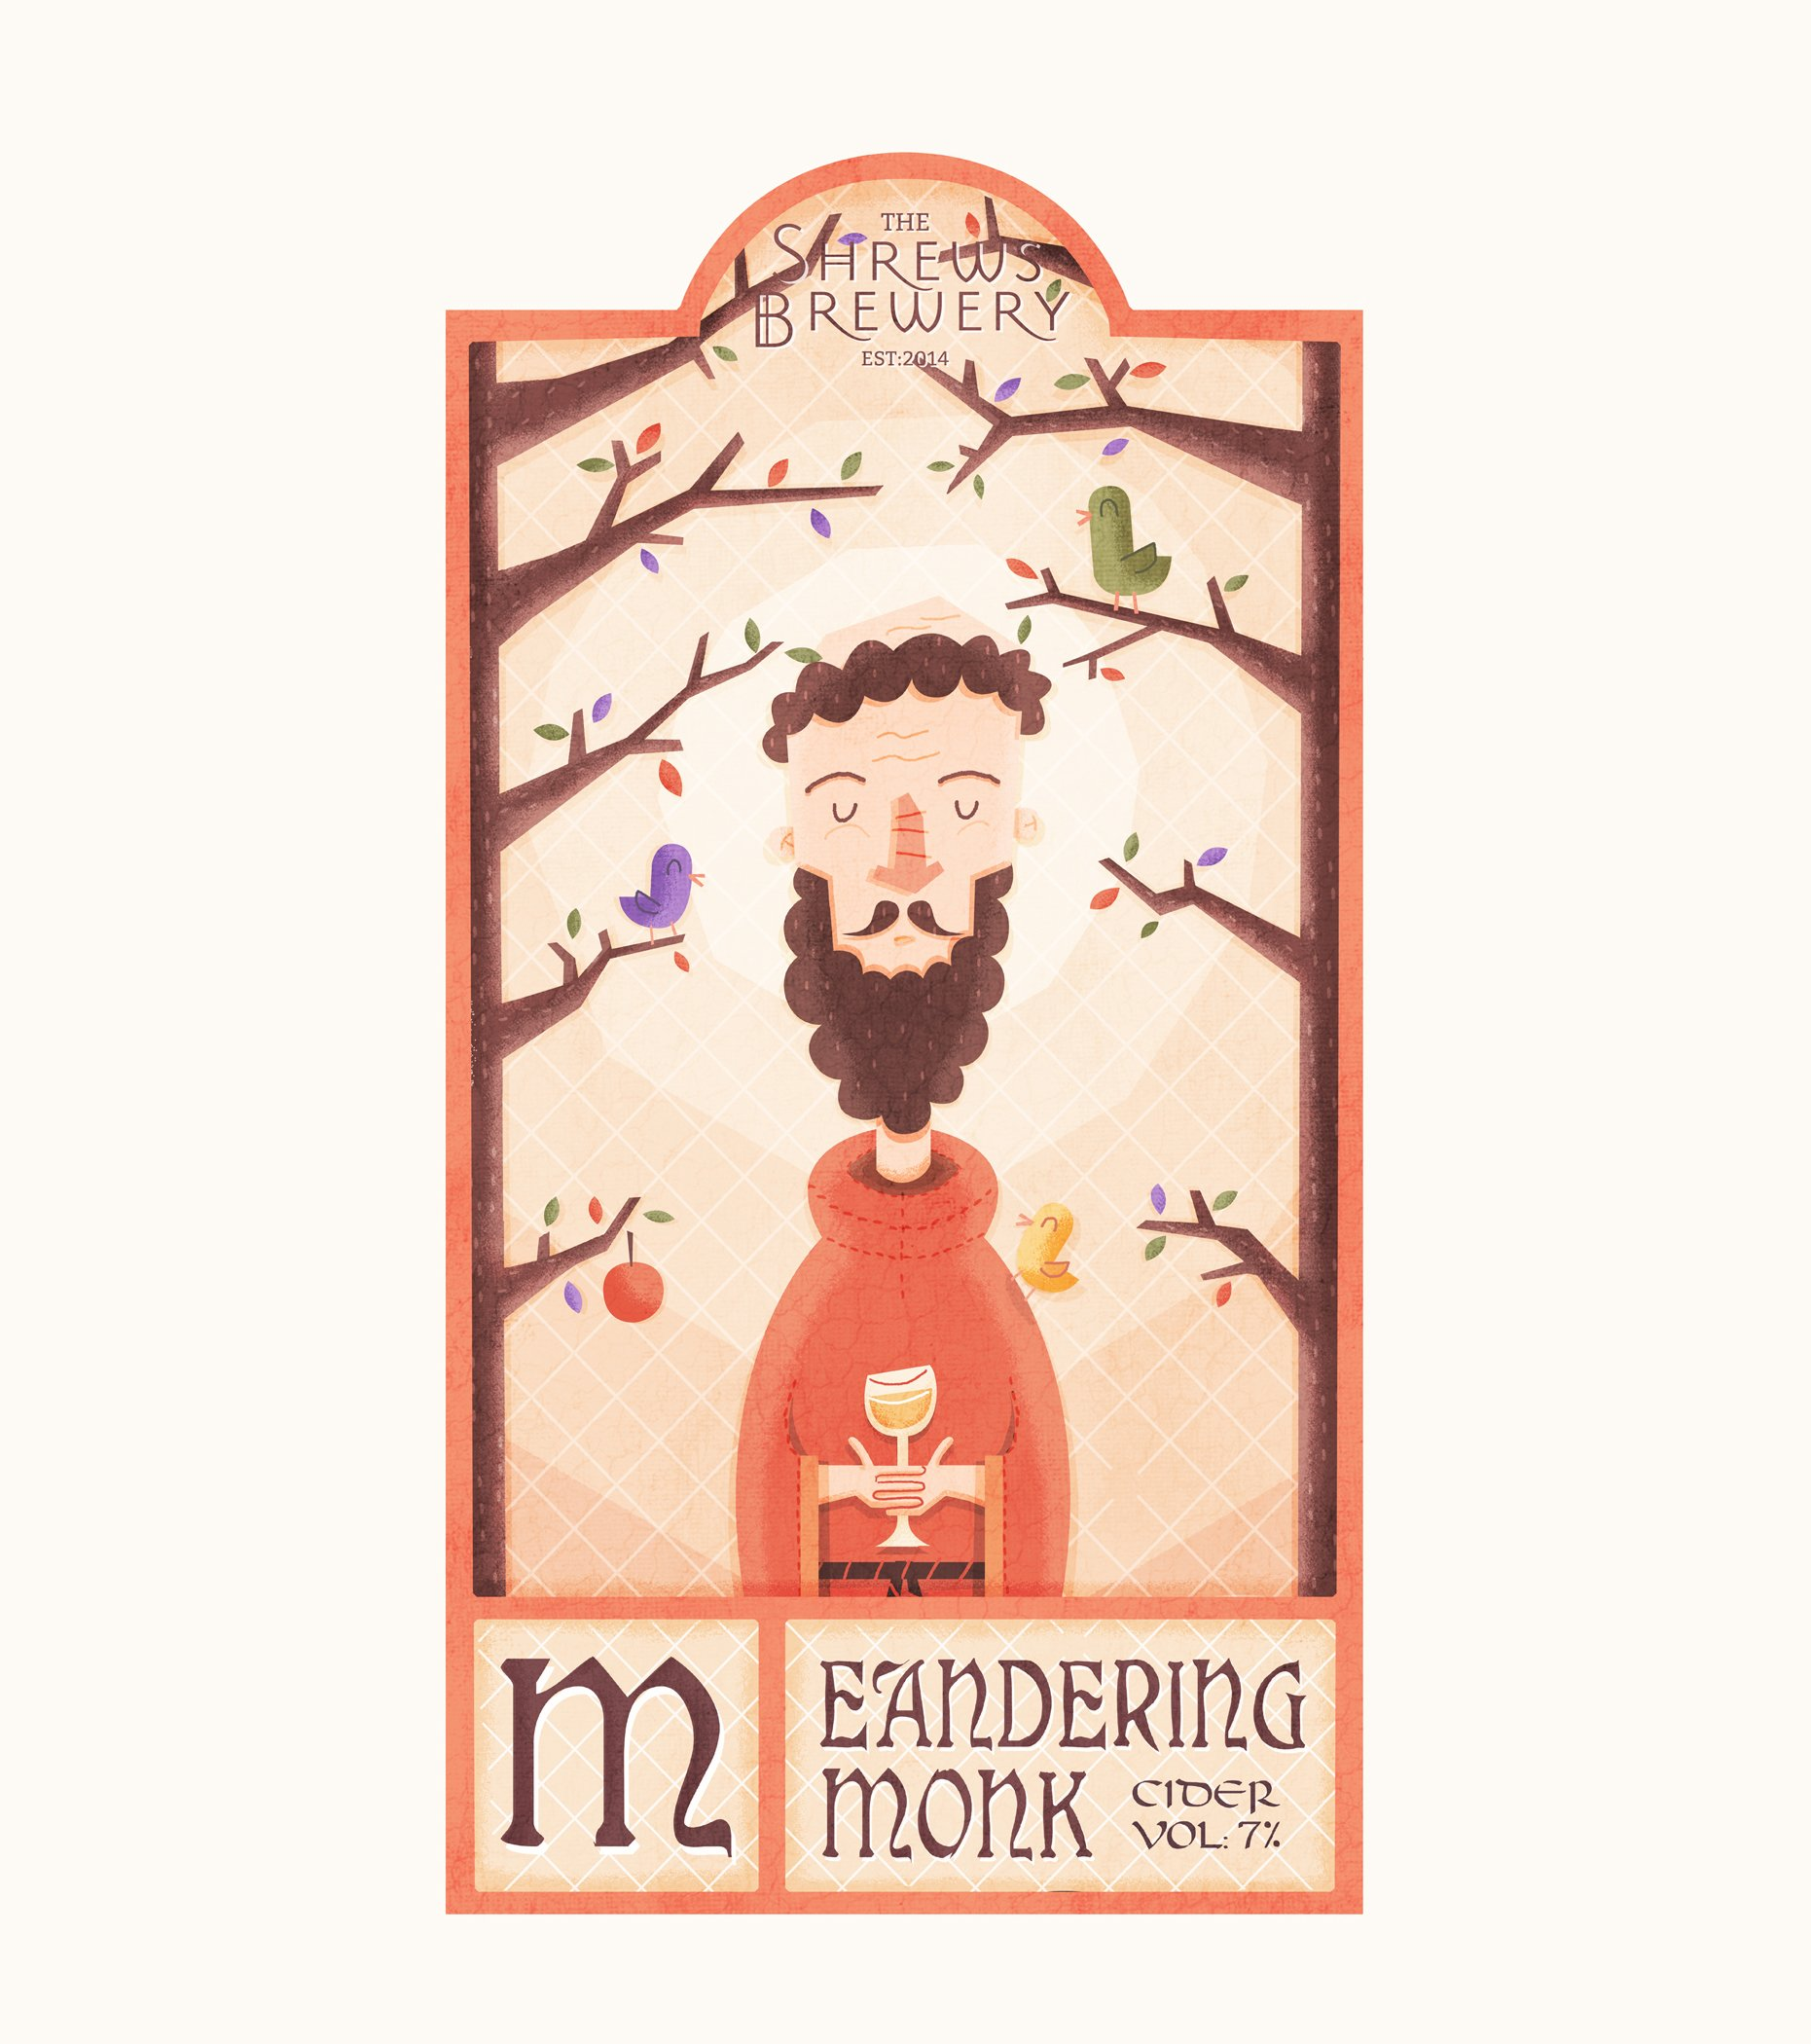 meandering monk cider label design Illustration